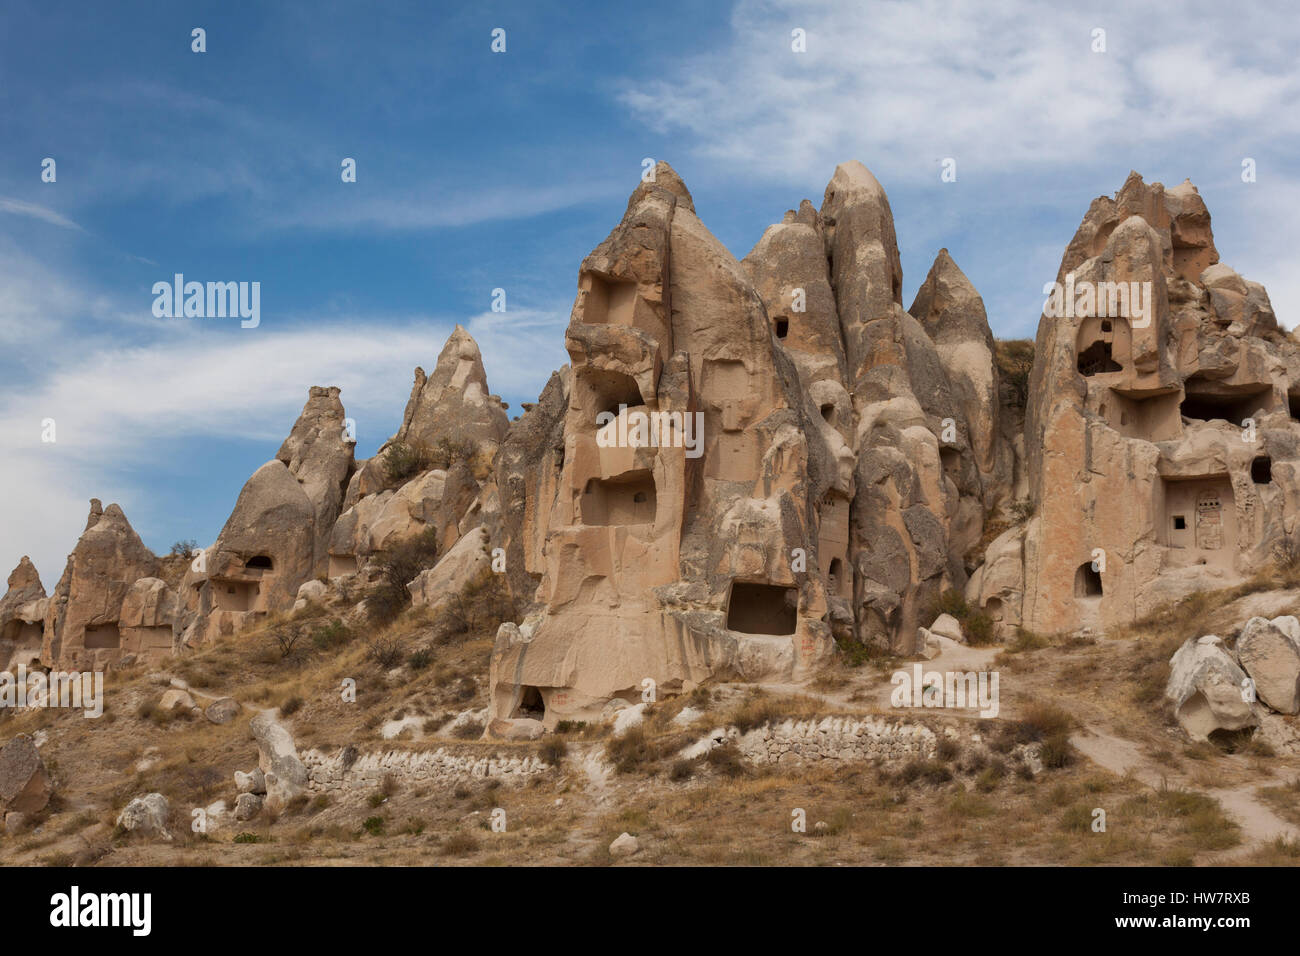 Cave dwelling ruins at the Goreme Open Air Museum, Turkey - Stock Image